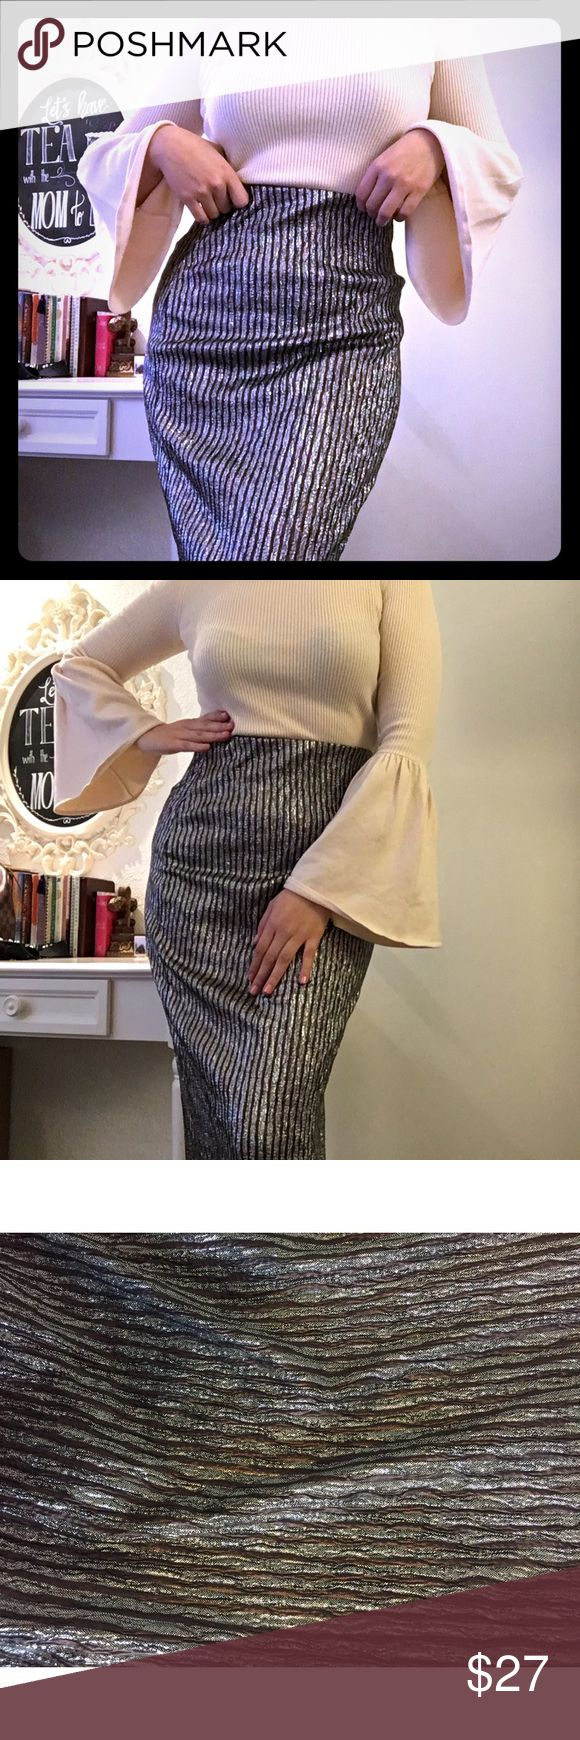 Maxi bcbg skirt silver and brown formal Beautiful long formal skirt. Silver with brown. Has a sort of longer tail on the back side. Top is all elastic for perfect fit BCBGeneration Skirts Maxi